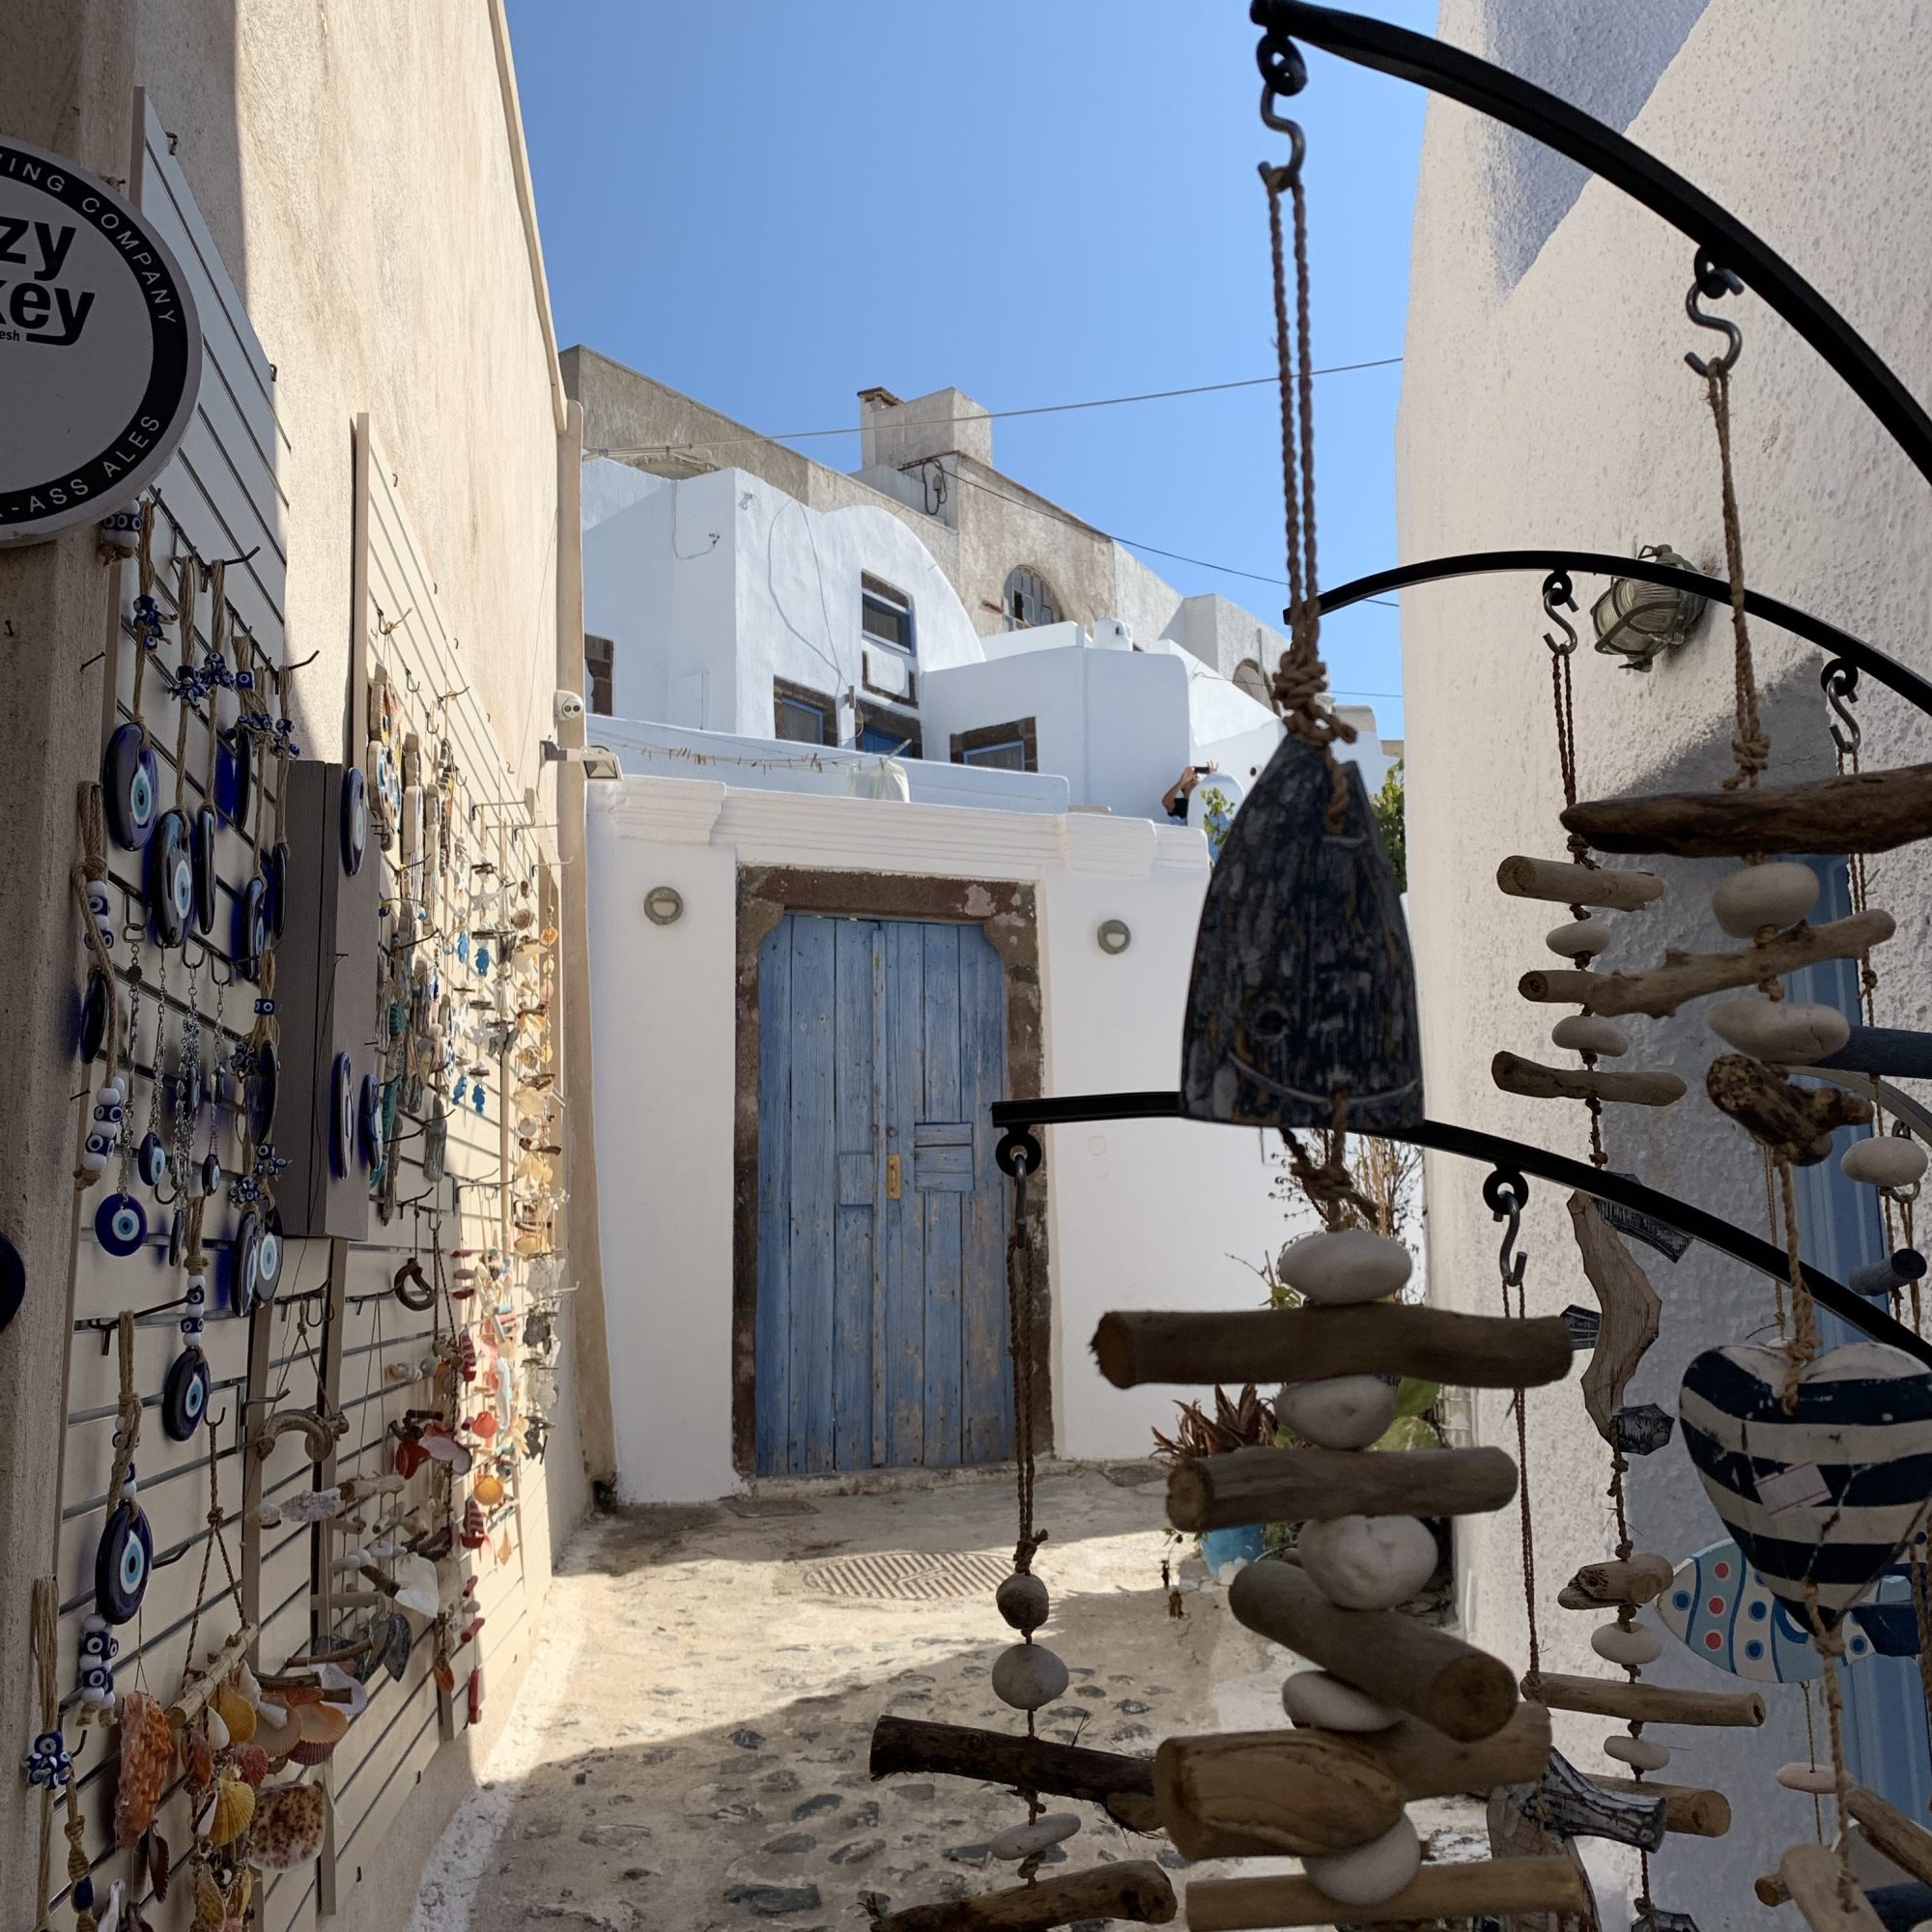 Exploring shops in Santorini